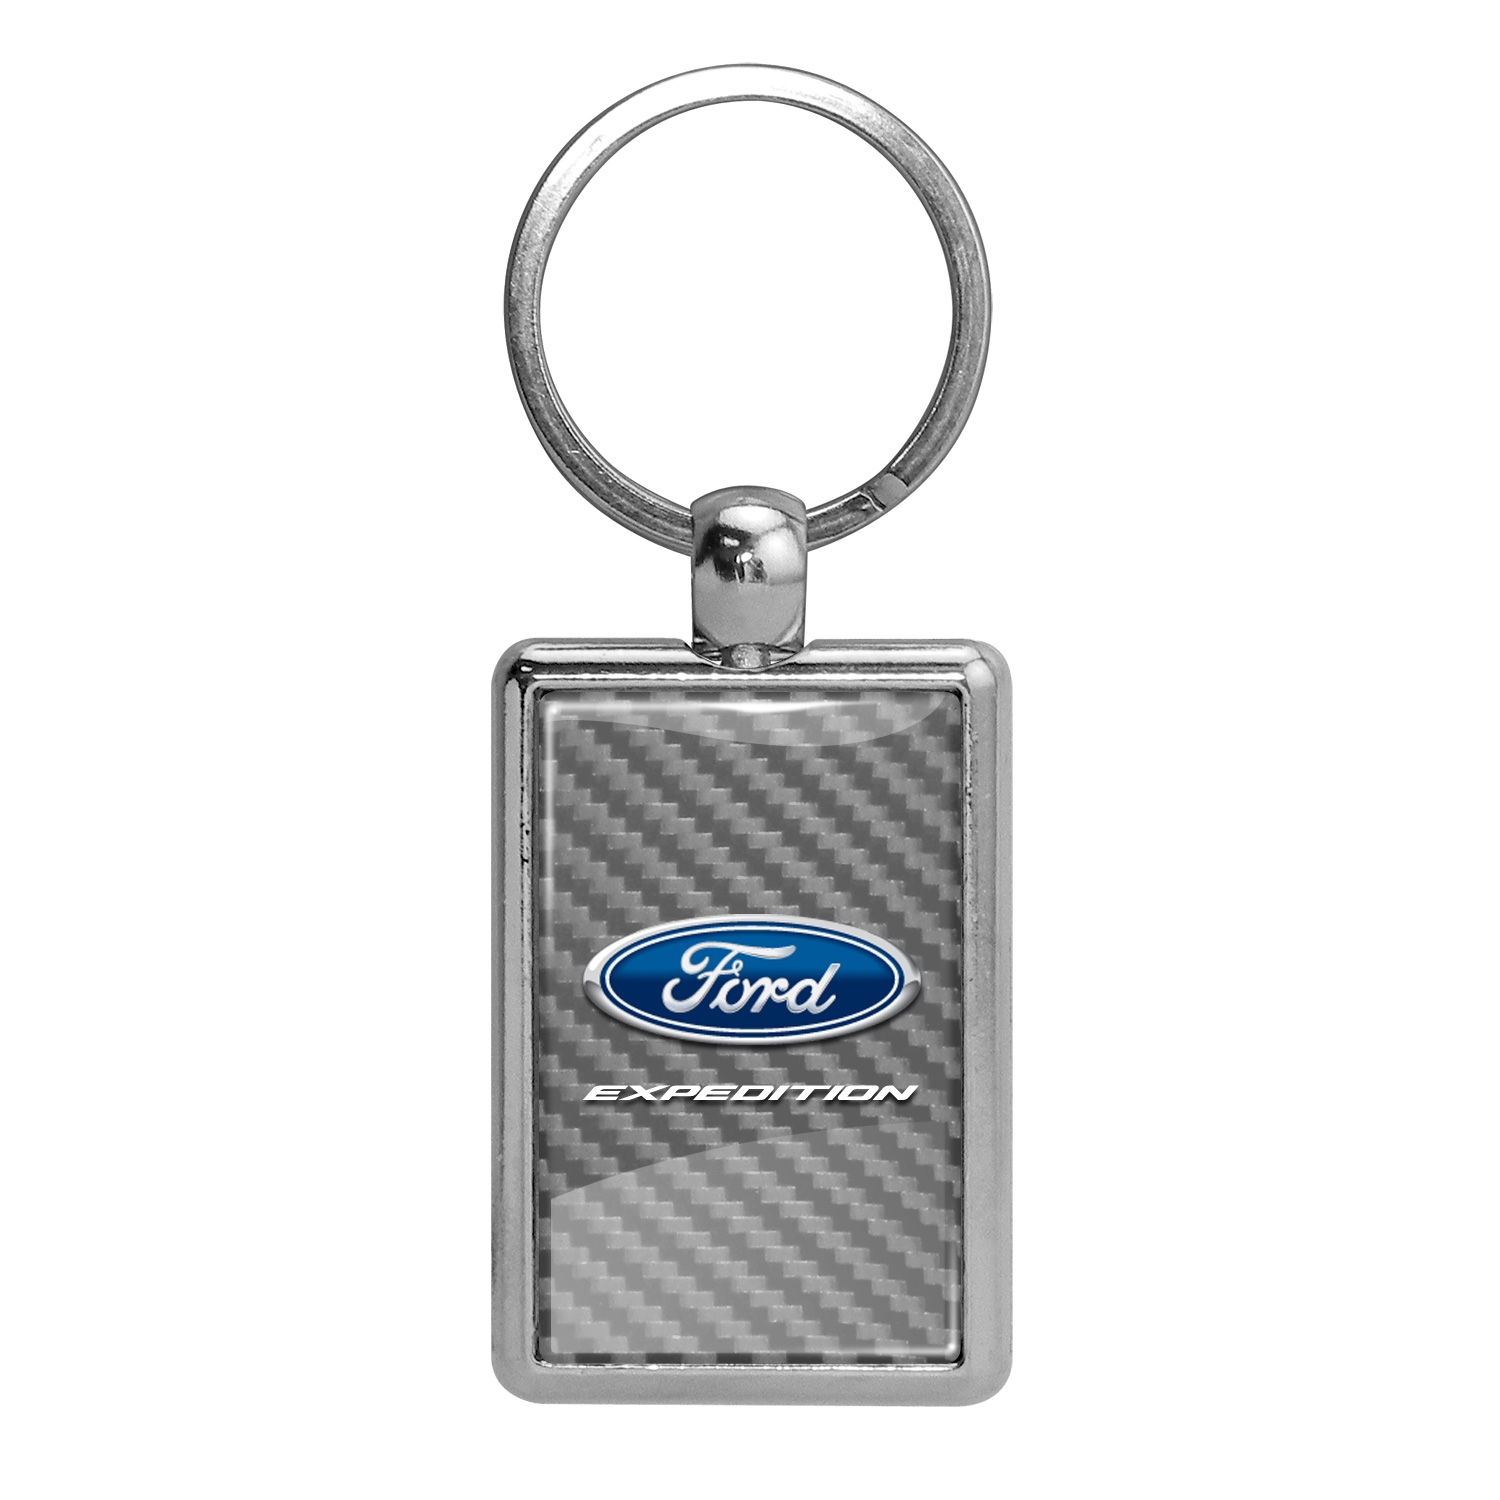 Ford Expedition Silver Carbon Fiber Backing Brush Rectangle Metal Key Chain